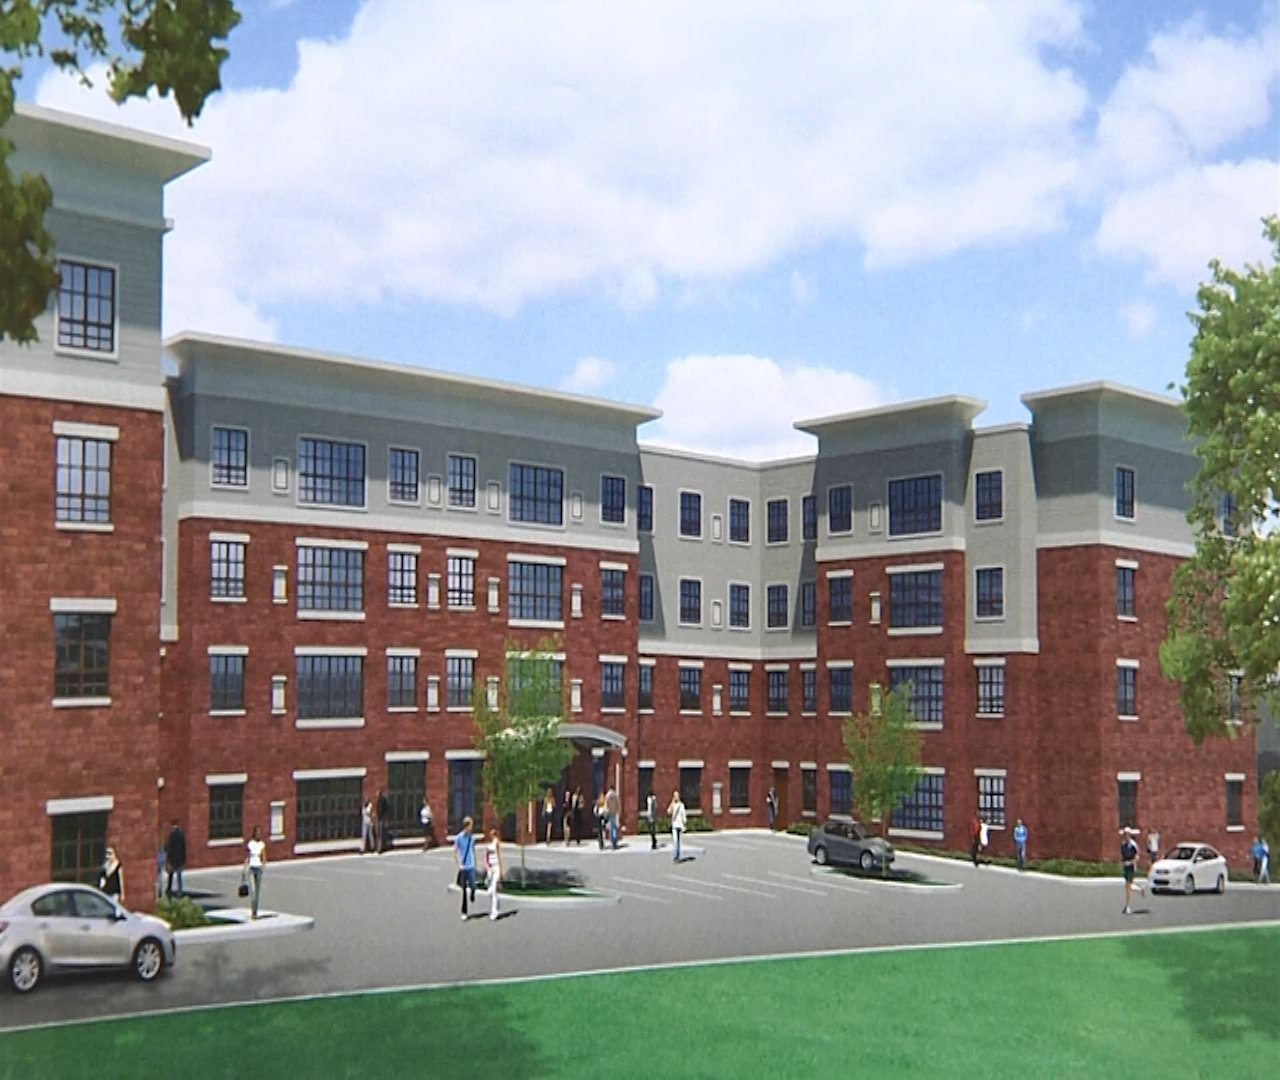 Apartments In Erie Pa: Possible Legal Action Over Student Housing Project